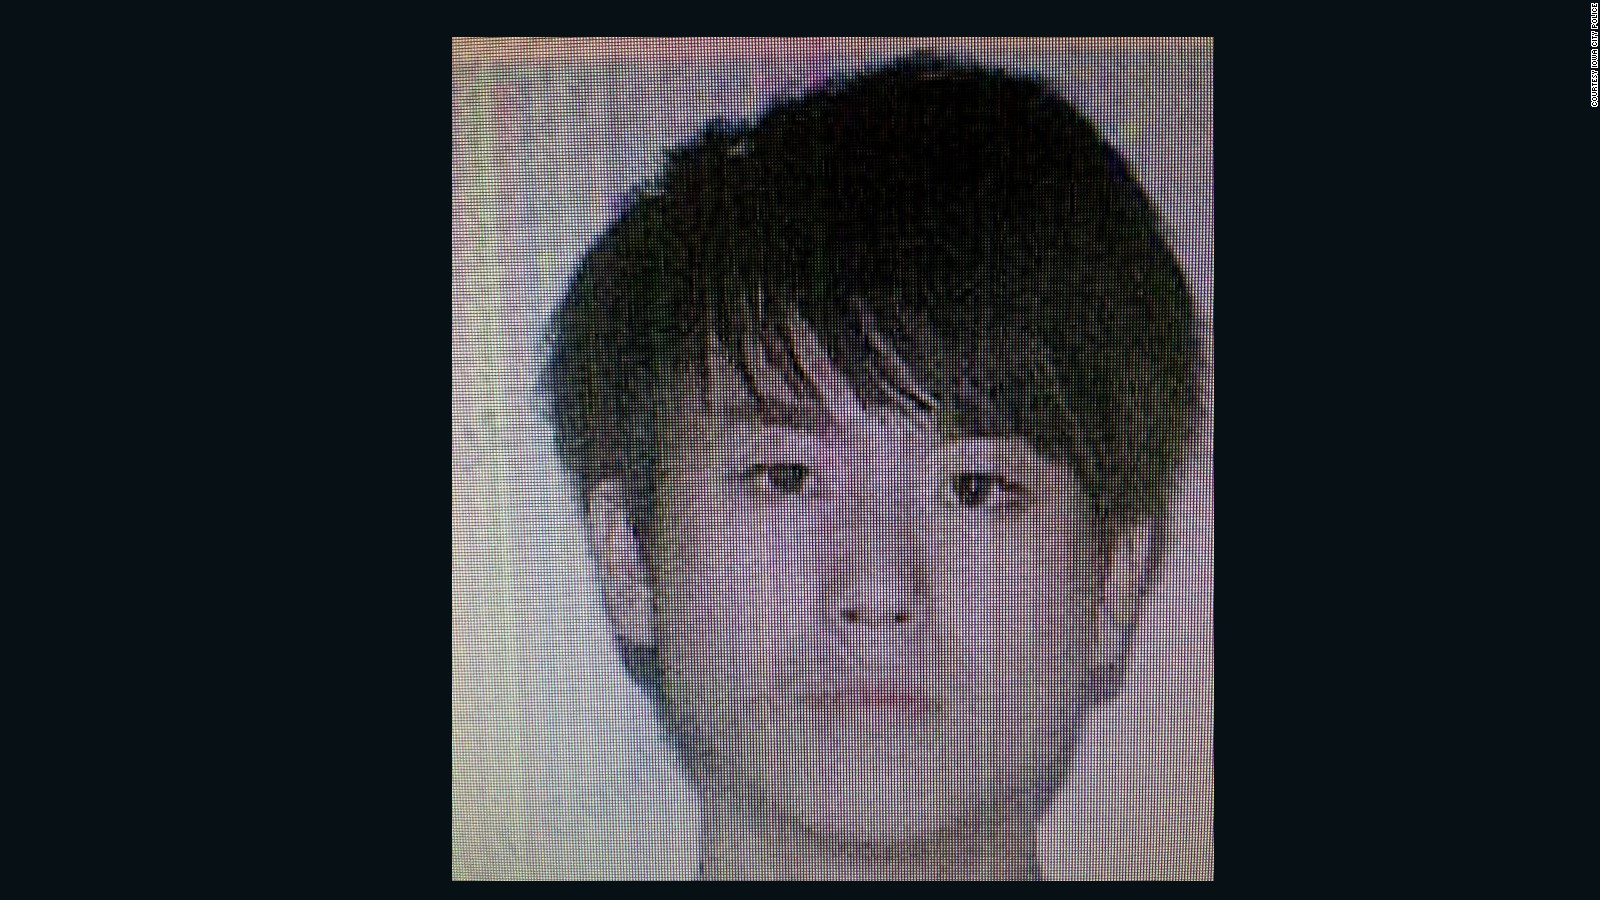 Chinese student fled after strangling Iowa State